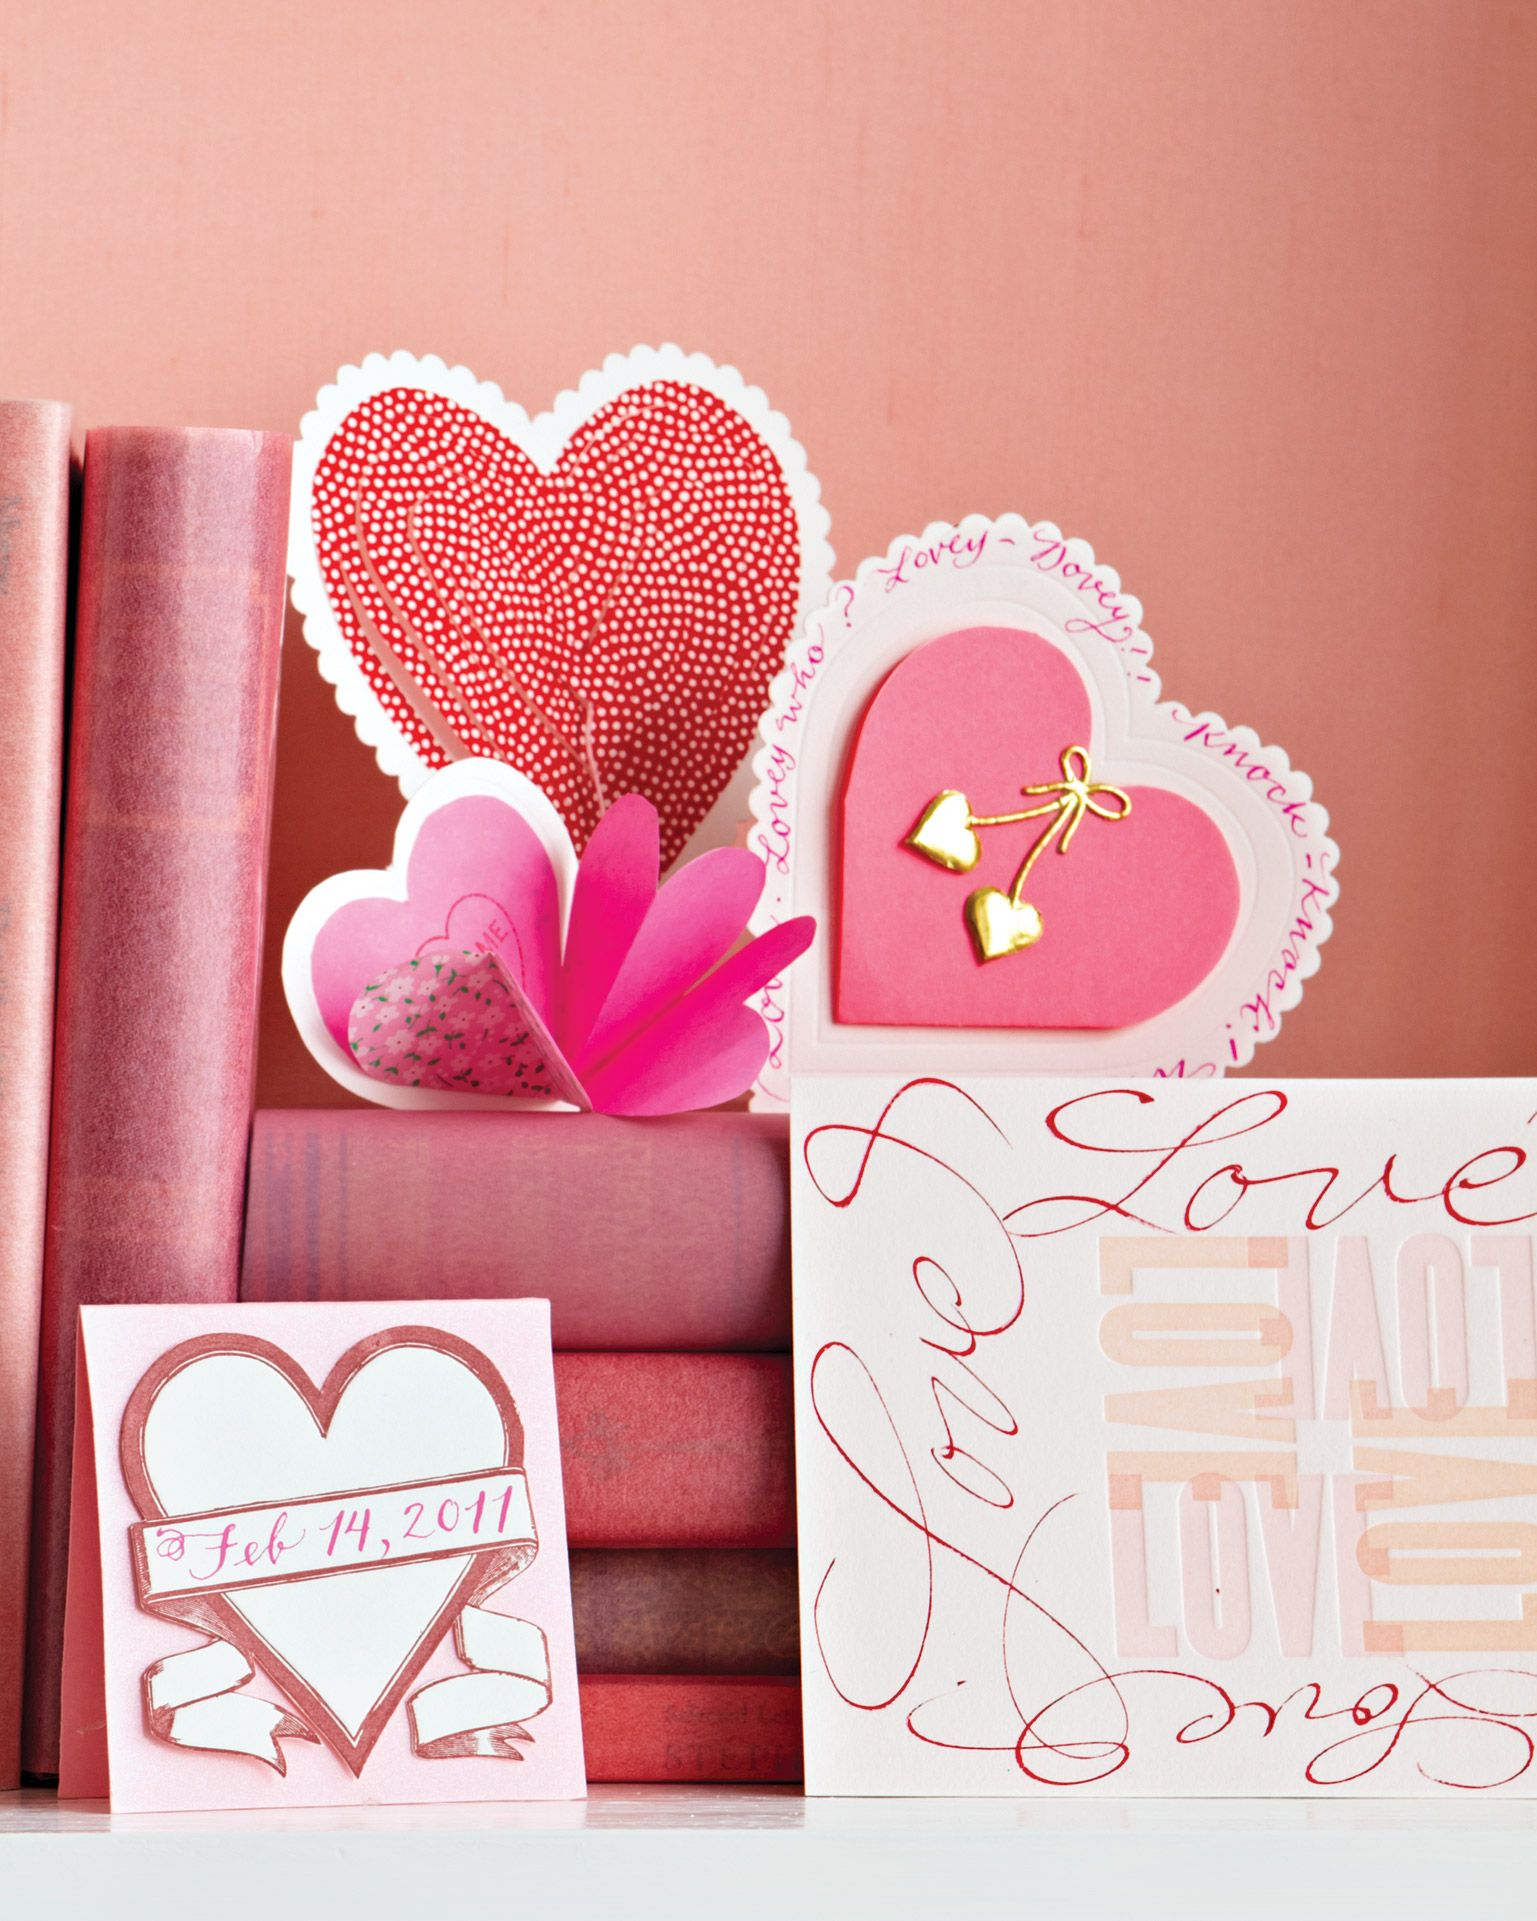 14 Valentine S Day Cards With Clip Art And Templates Valentines Day Card Templates Valentine Day Cards Valentines Cards